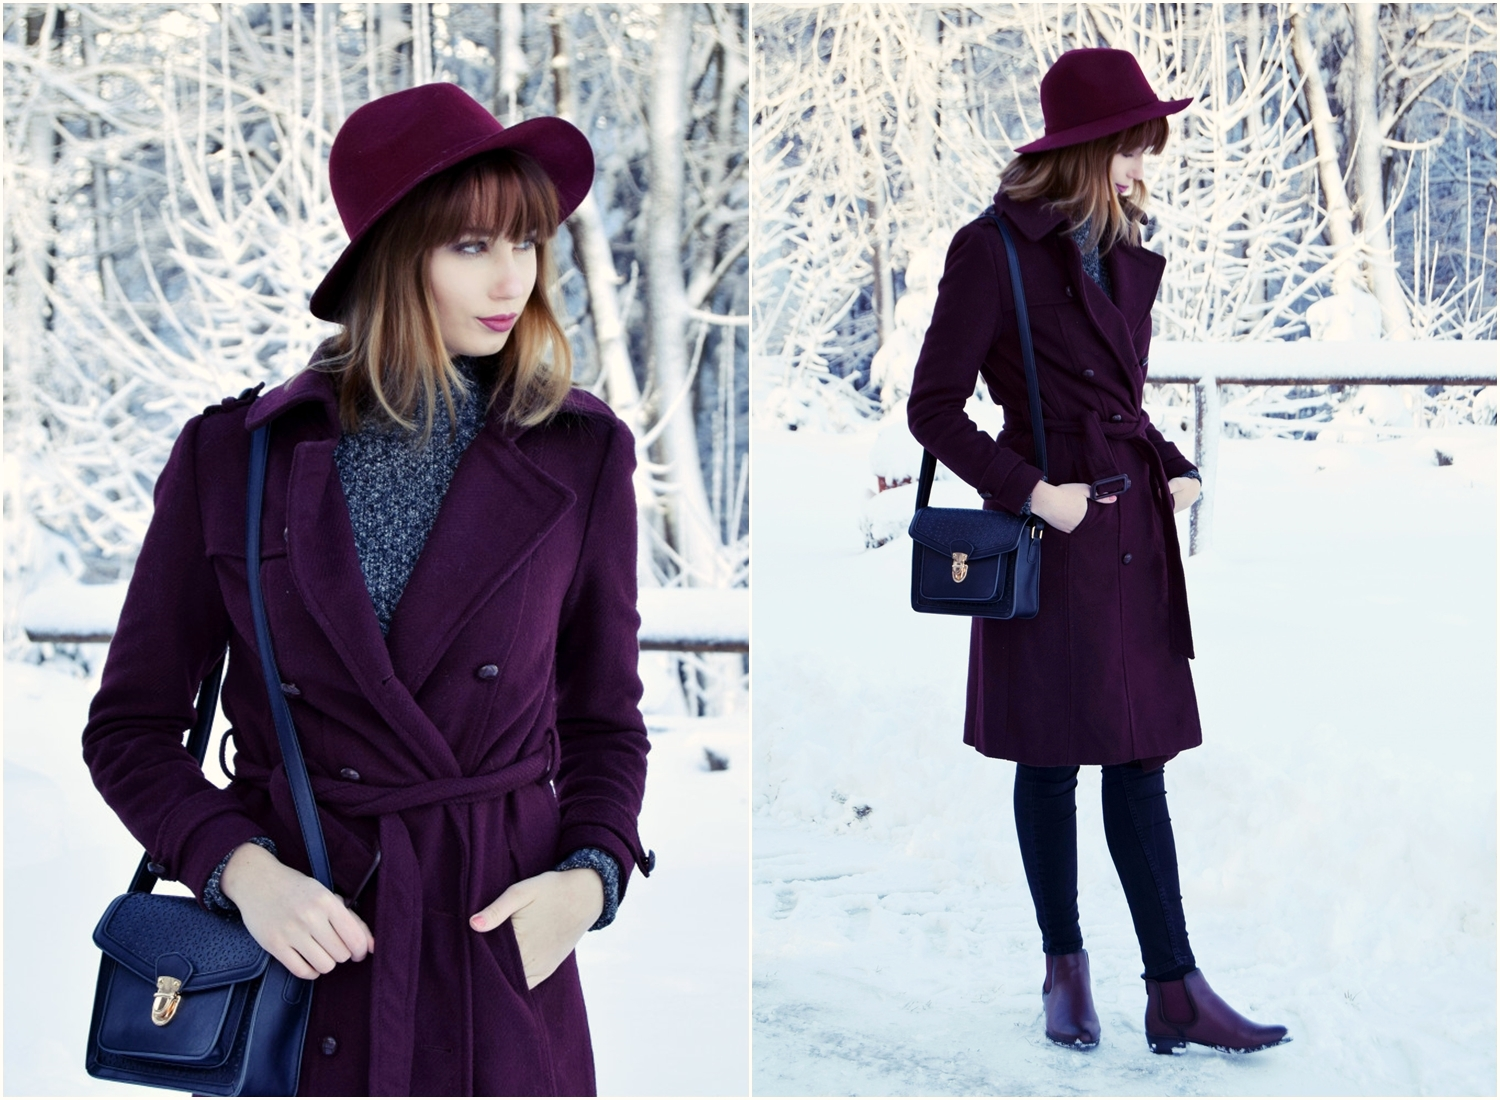 Winter_outfit_bordeaux_snow_Zalabell_fashion_3